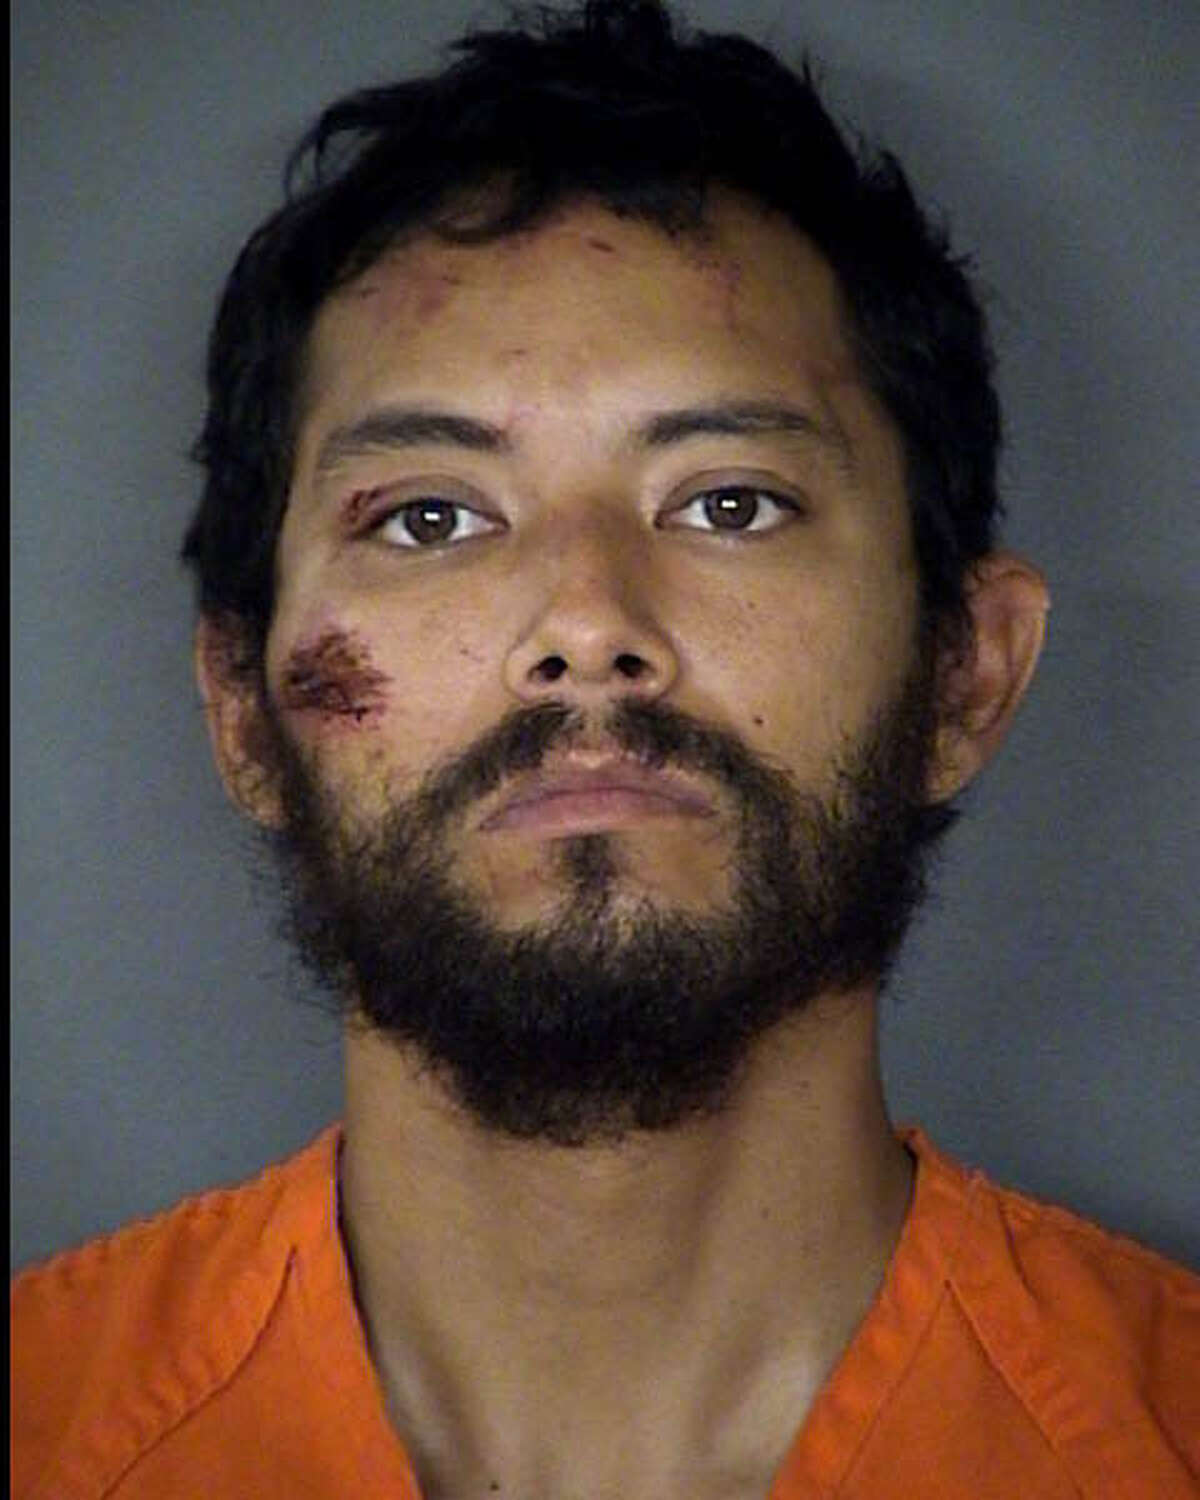 Antonio Obregon, 32, died after he was found unresponsive and bleeding in the Bexar County Jail Saturday evening.